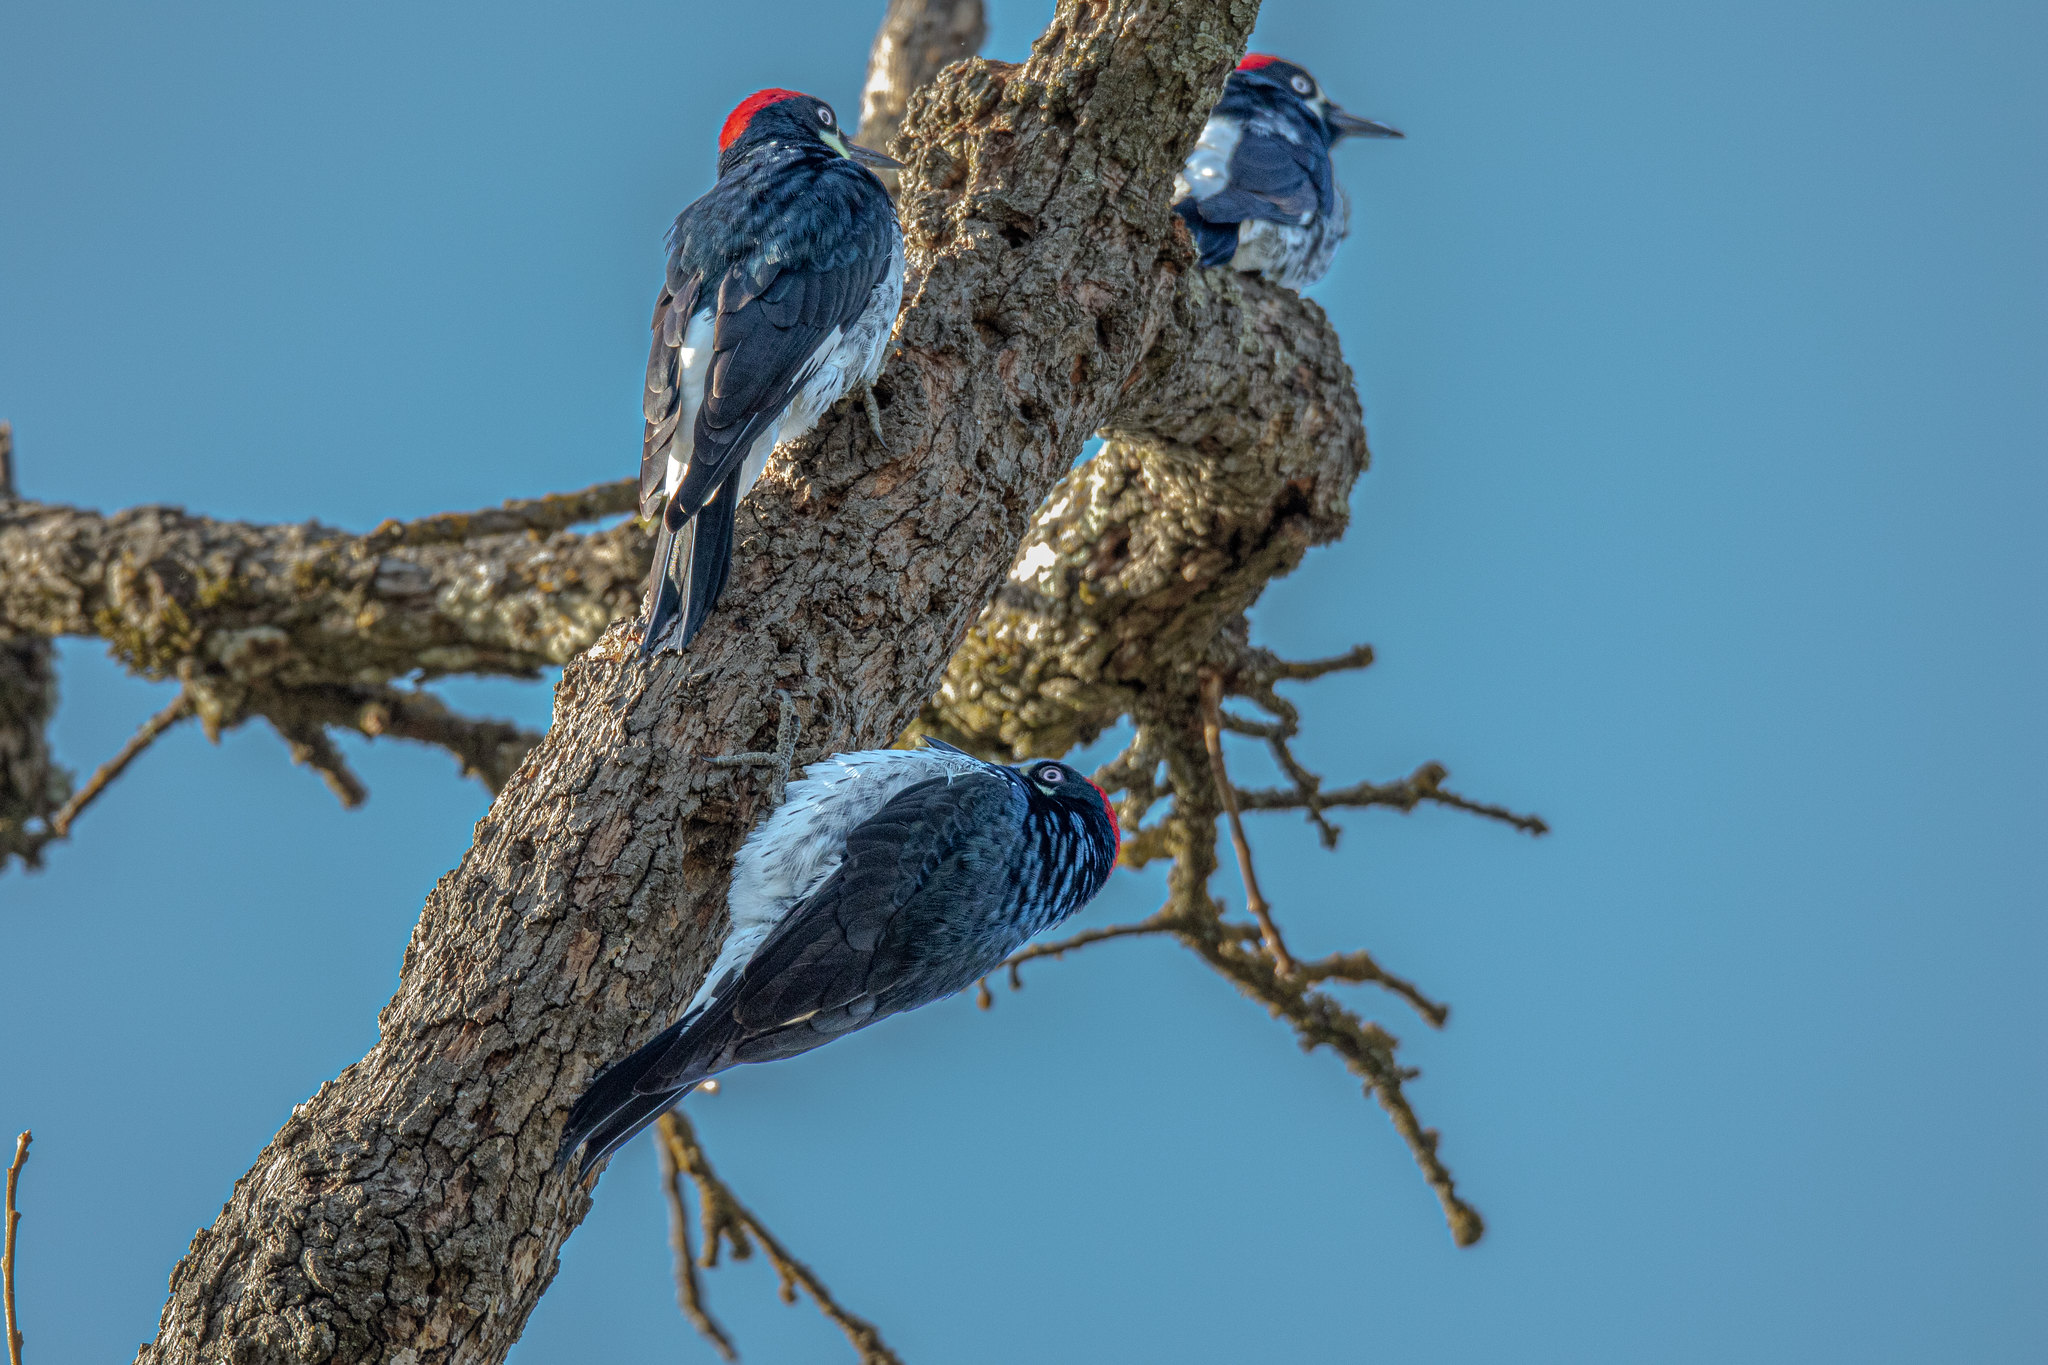 The communal habits of Acorn Woodpeckers are characteristic of the species. <br> Arvind Agarwal  © Creative Commons